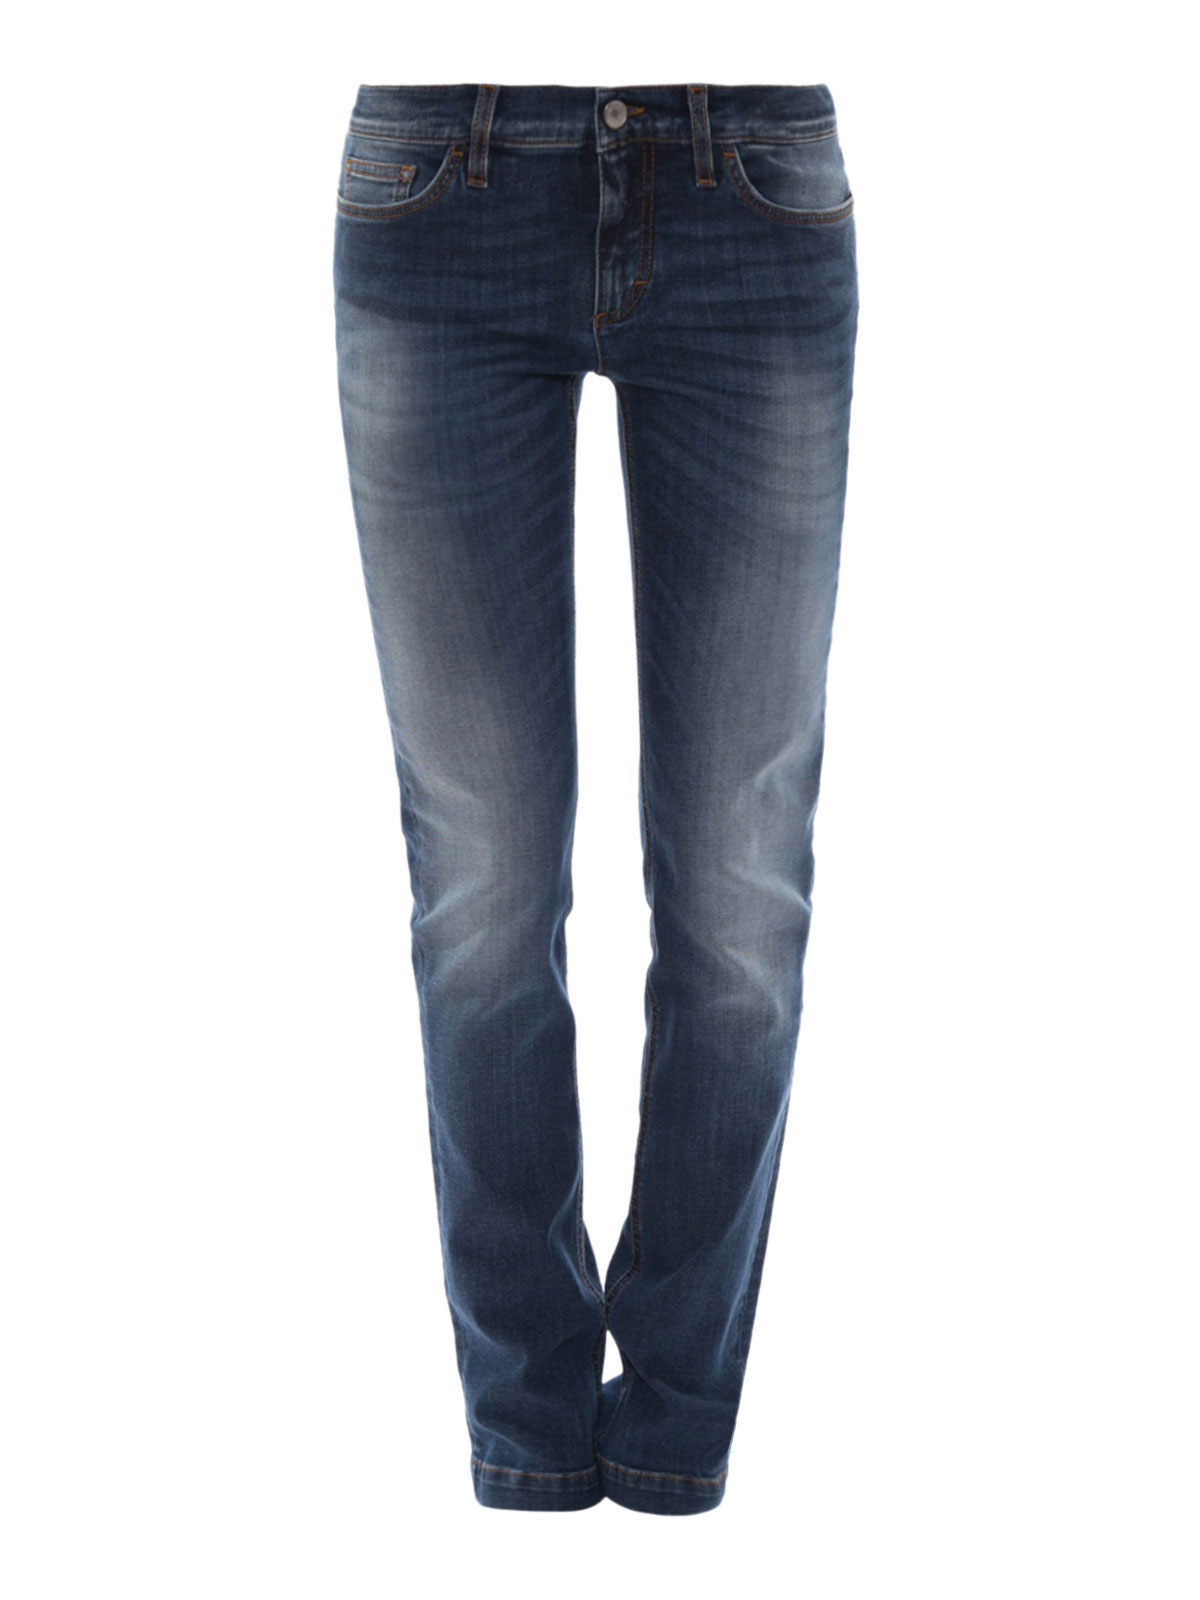 high rise jeans by dolce gabbana straight leg jeans. Black Bedroom Furniture Sets. Home Design Ideas